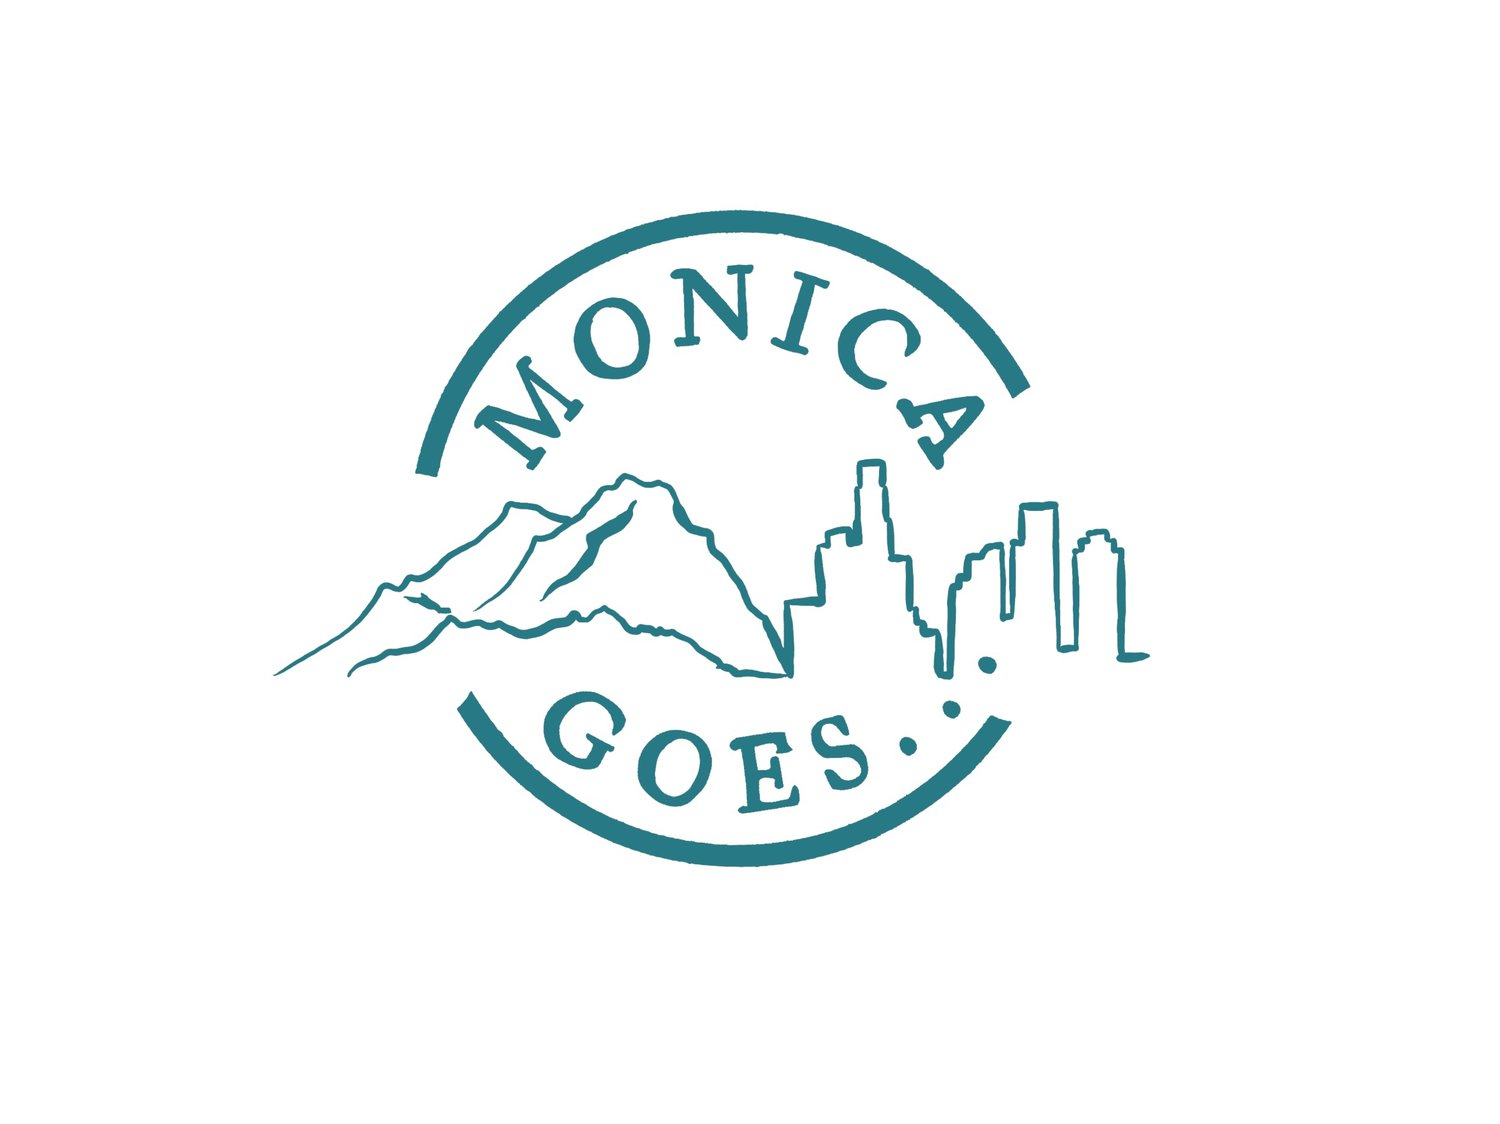 Monica Goes Adventure Travel Show